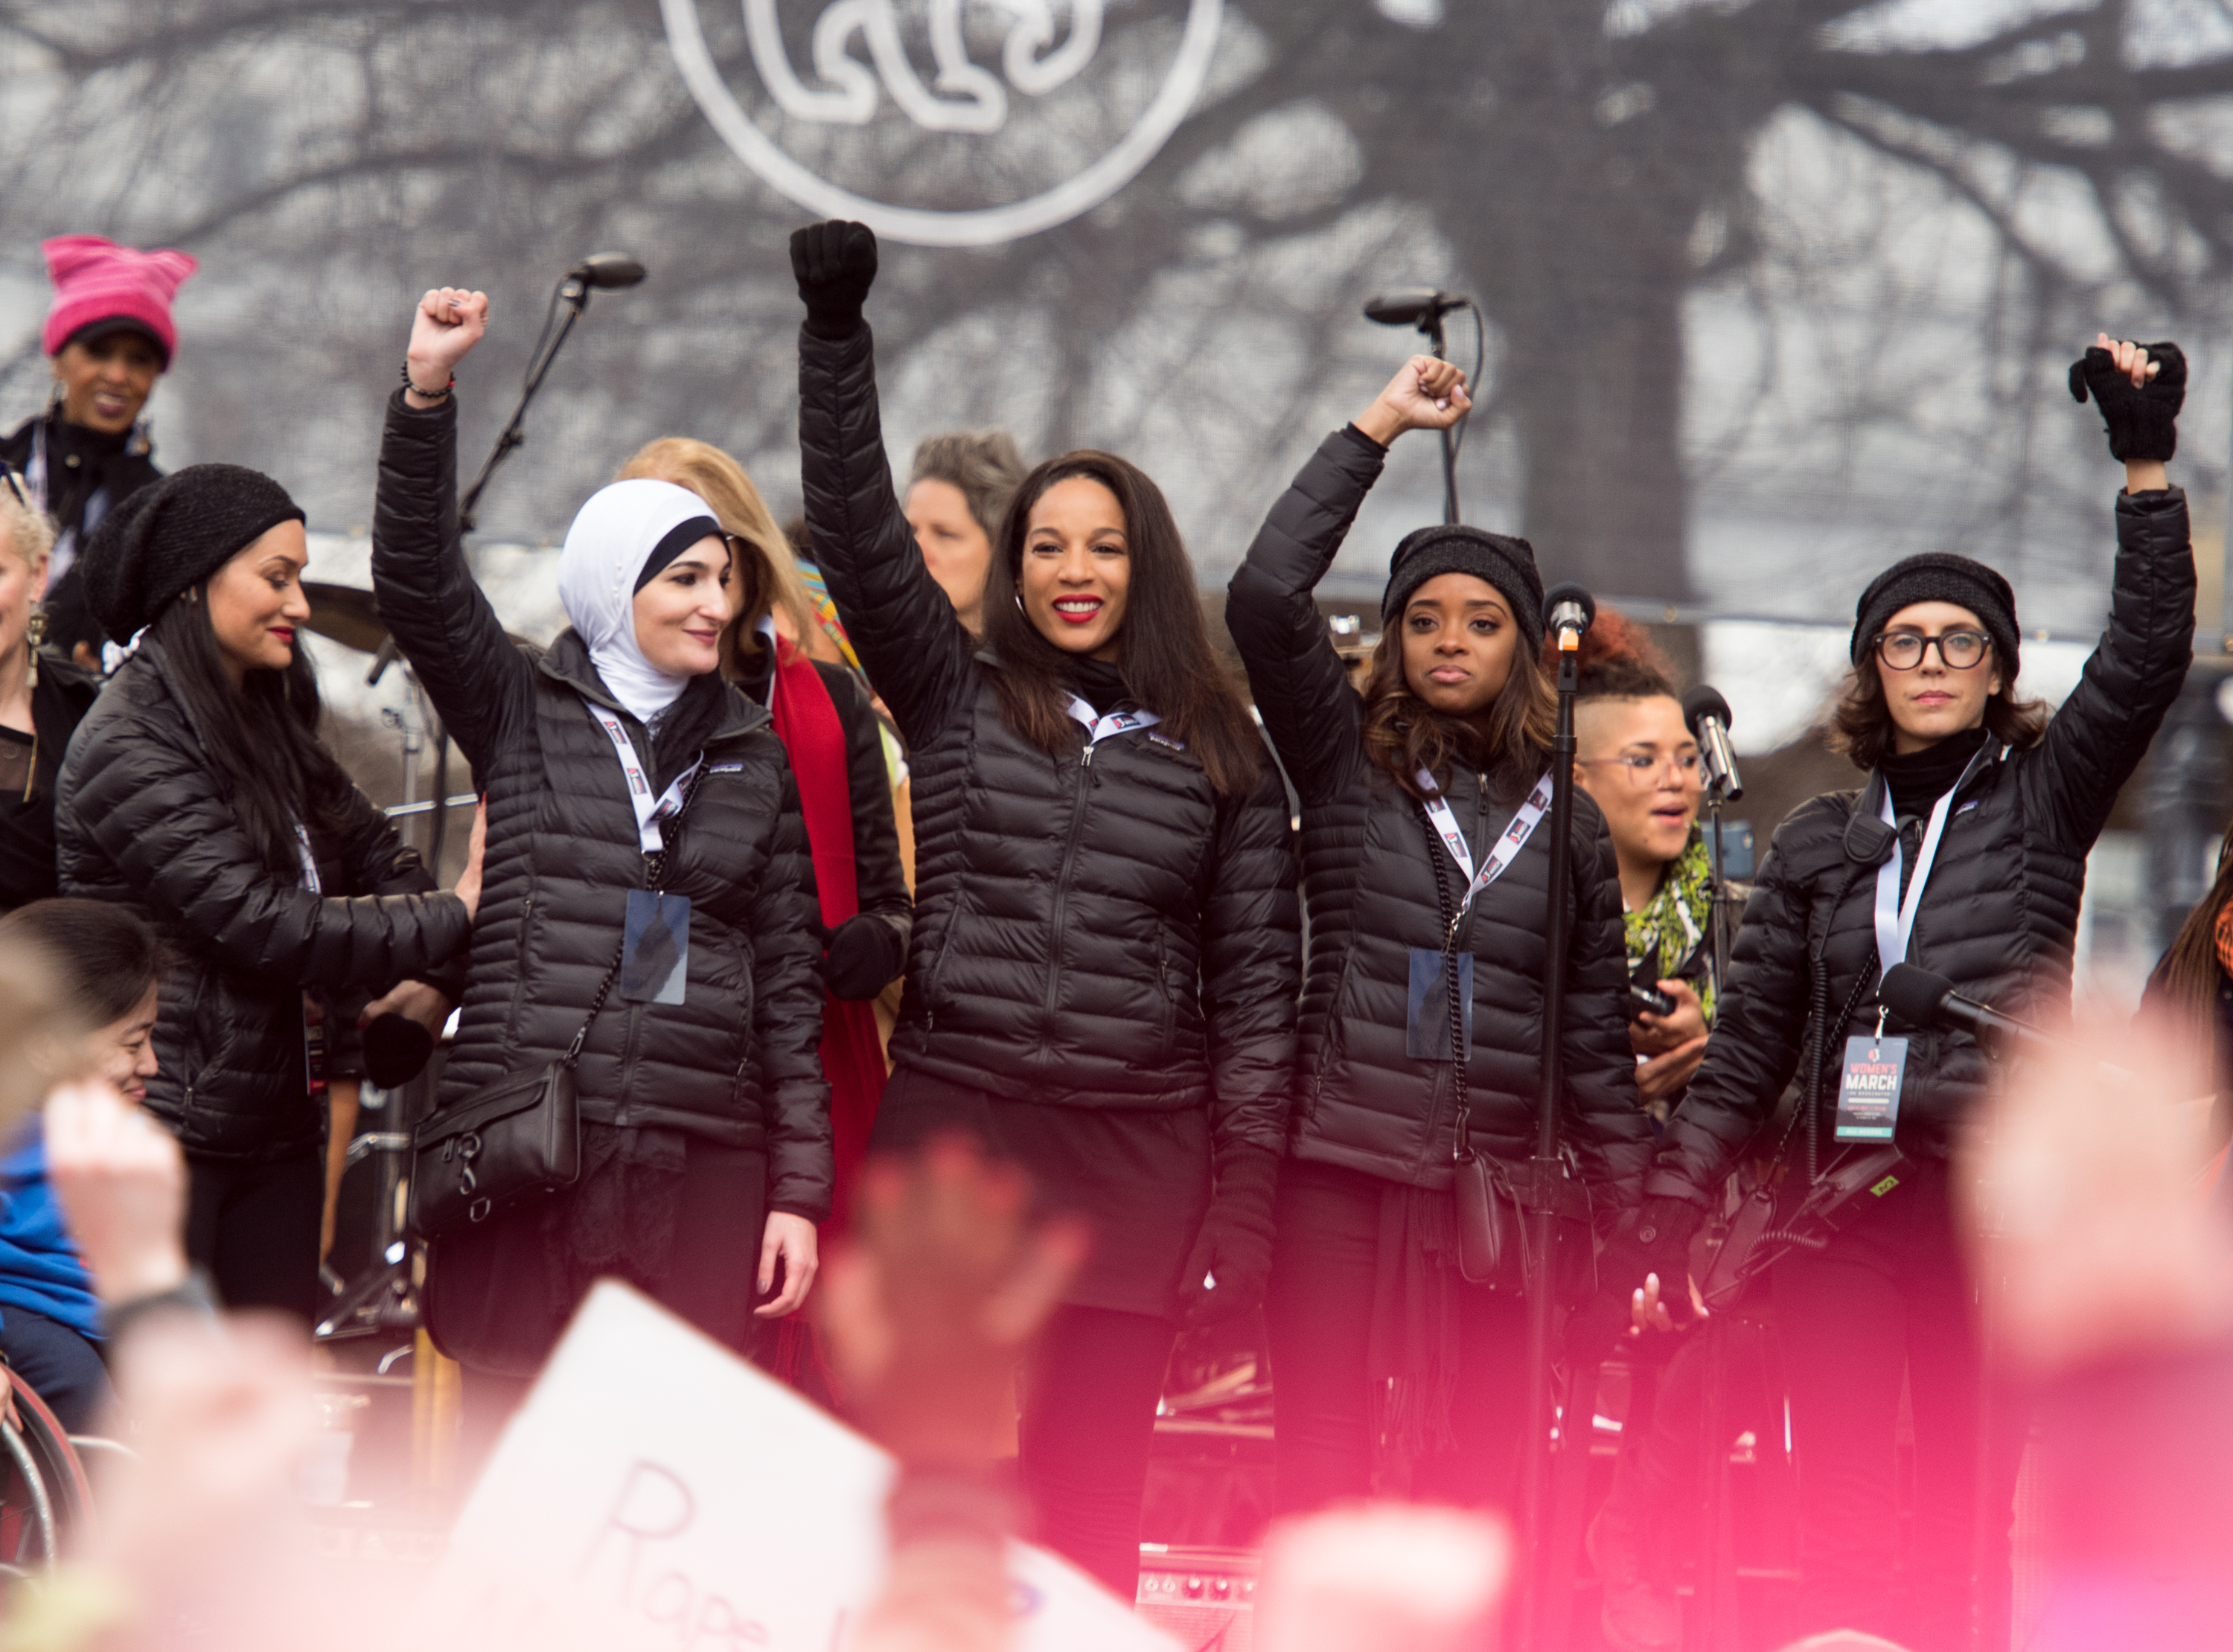 WASHINGTON, DC - JANUARY 21: National Co-Chairs of Women's March Carmen Perez, Linda Sarsour and Tamika D. Mallory attend the Women's March on Washington on January 21, 2017 in Washington, DC.  (Photo by Noam Galai/WireImage)